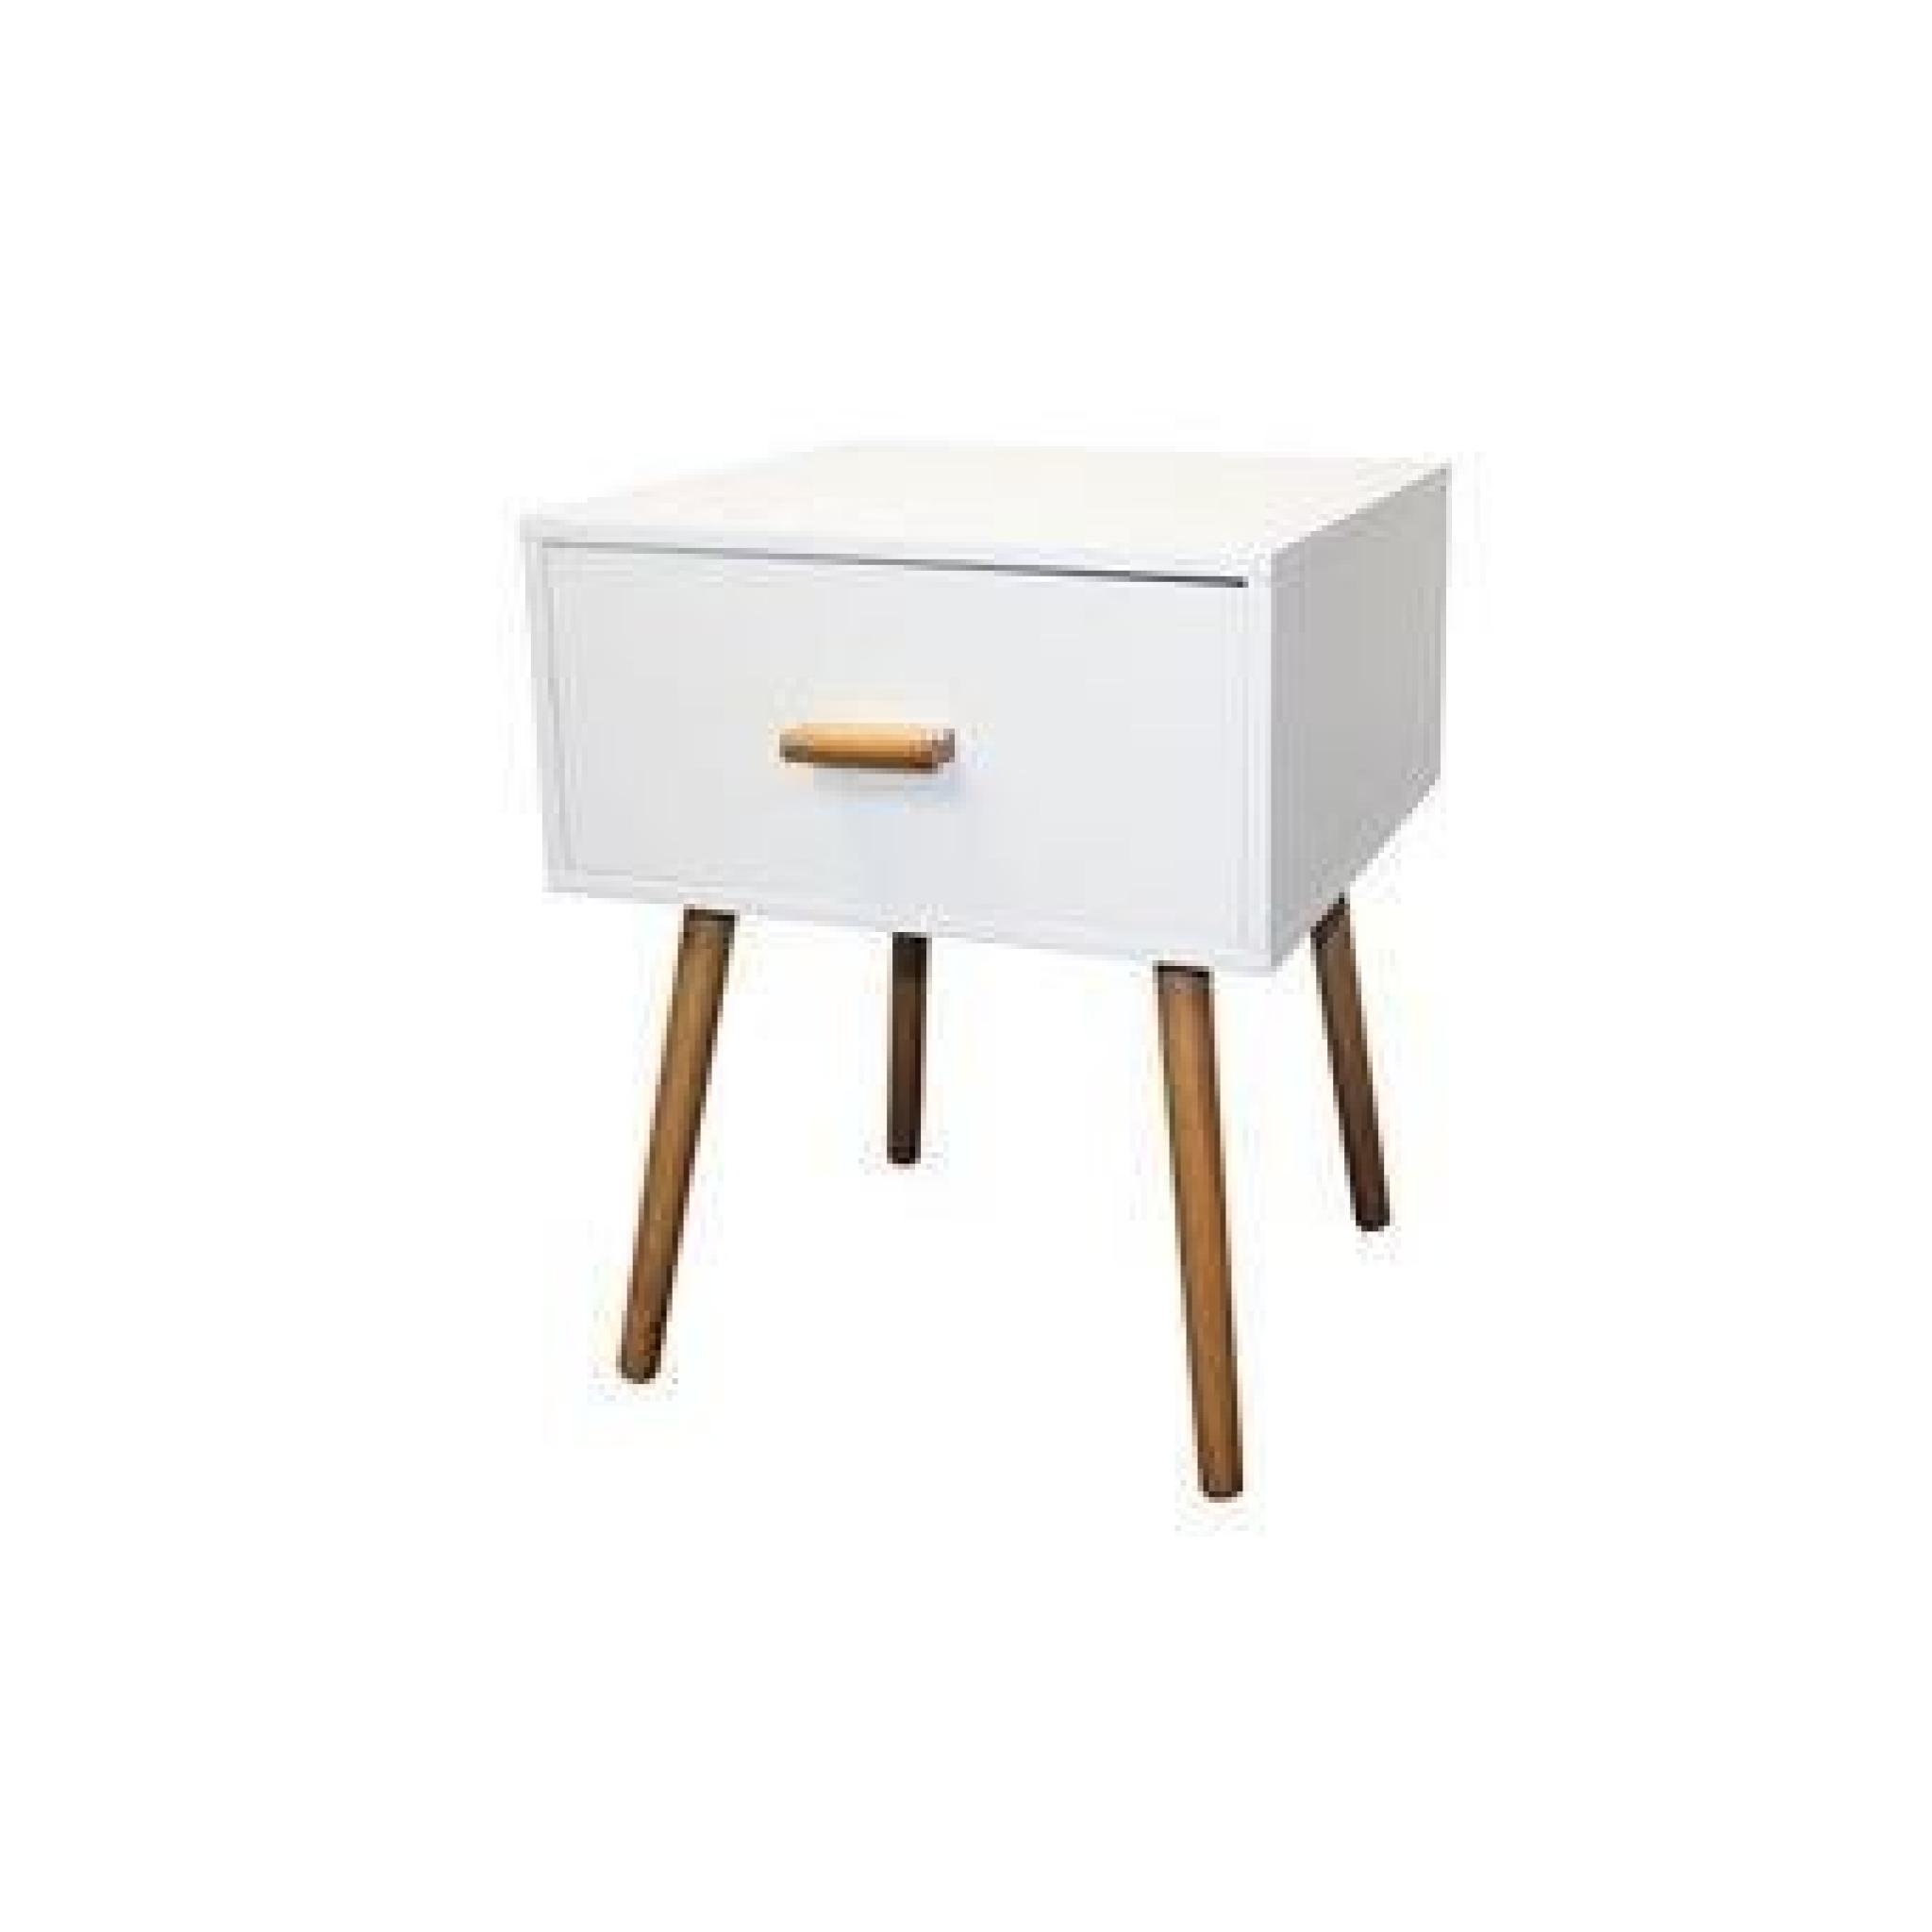 Table de chevet blanc design scandinave achat vente - Table chevet pas cher ...